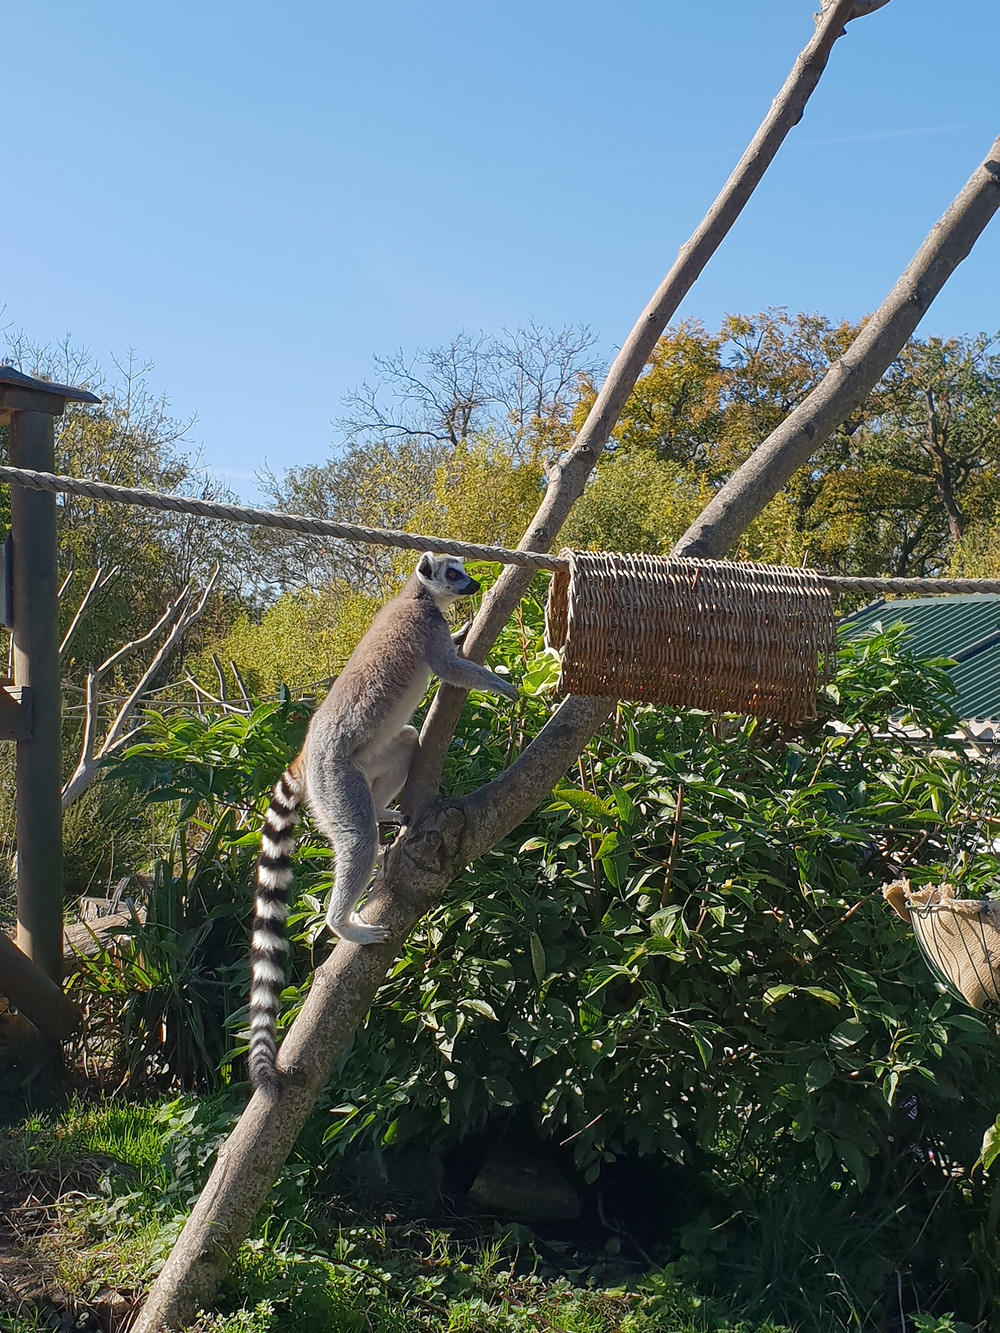 A lemur at The Wild Place